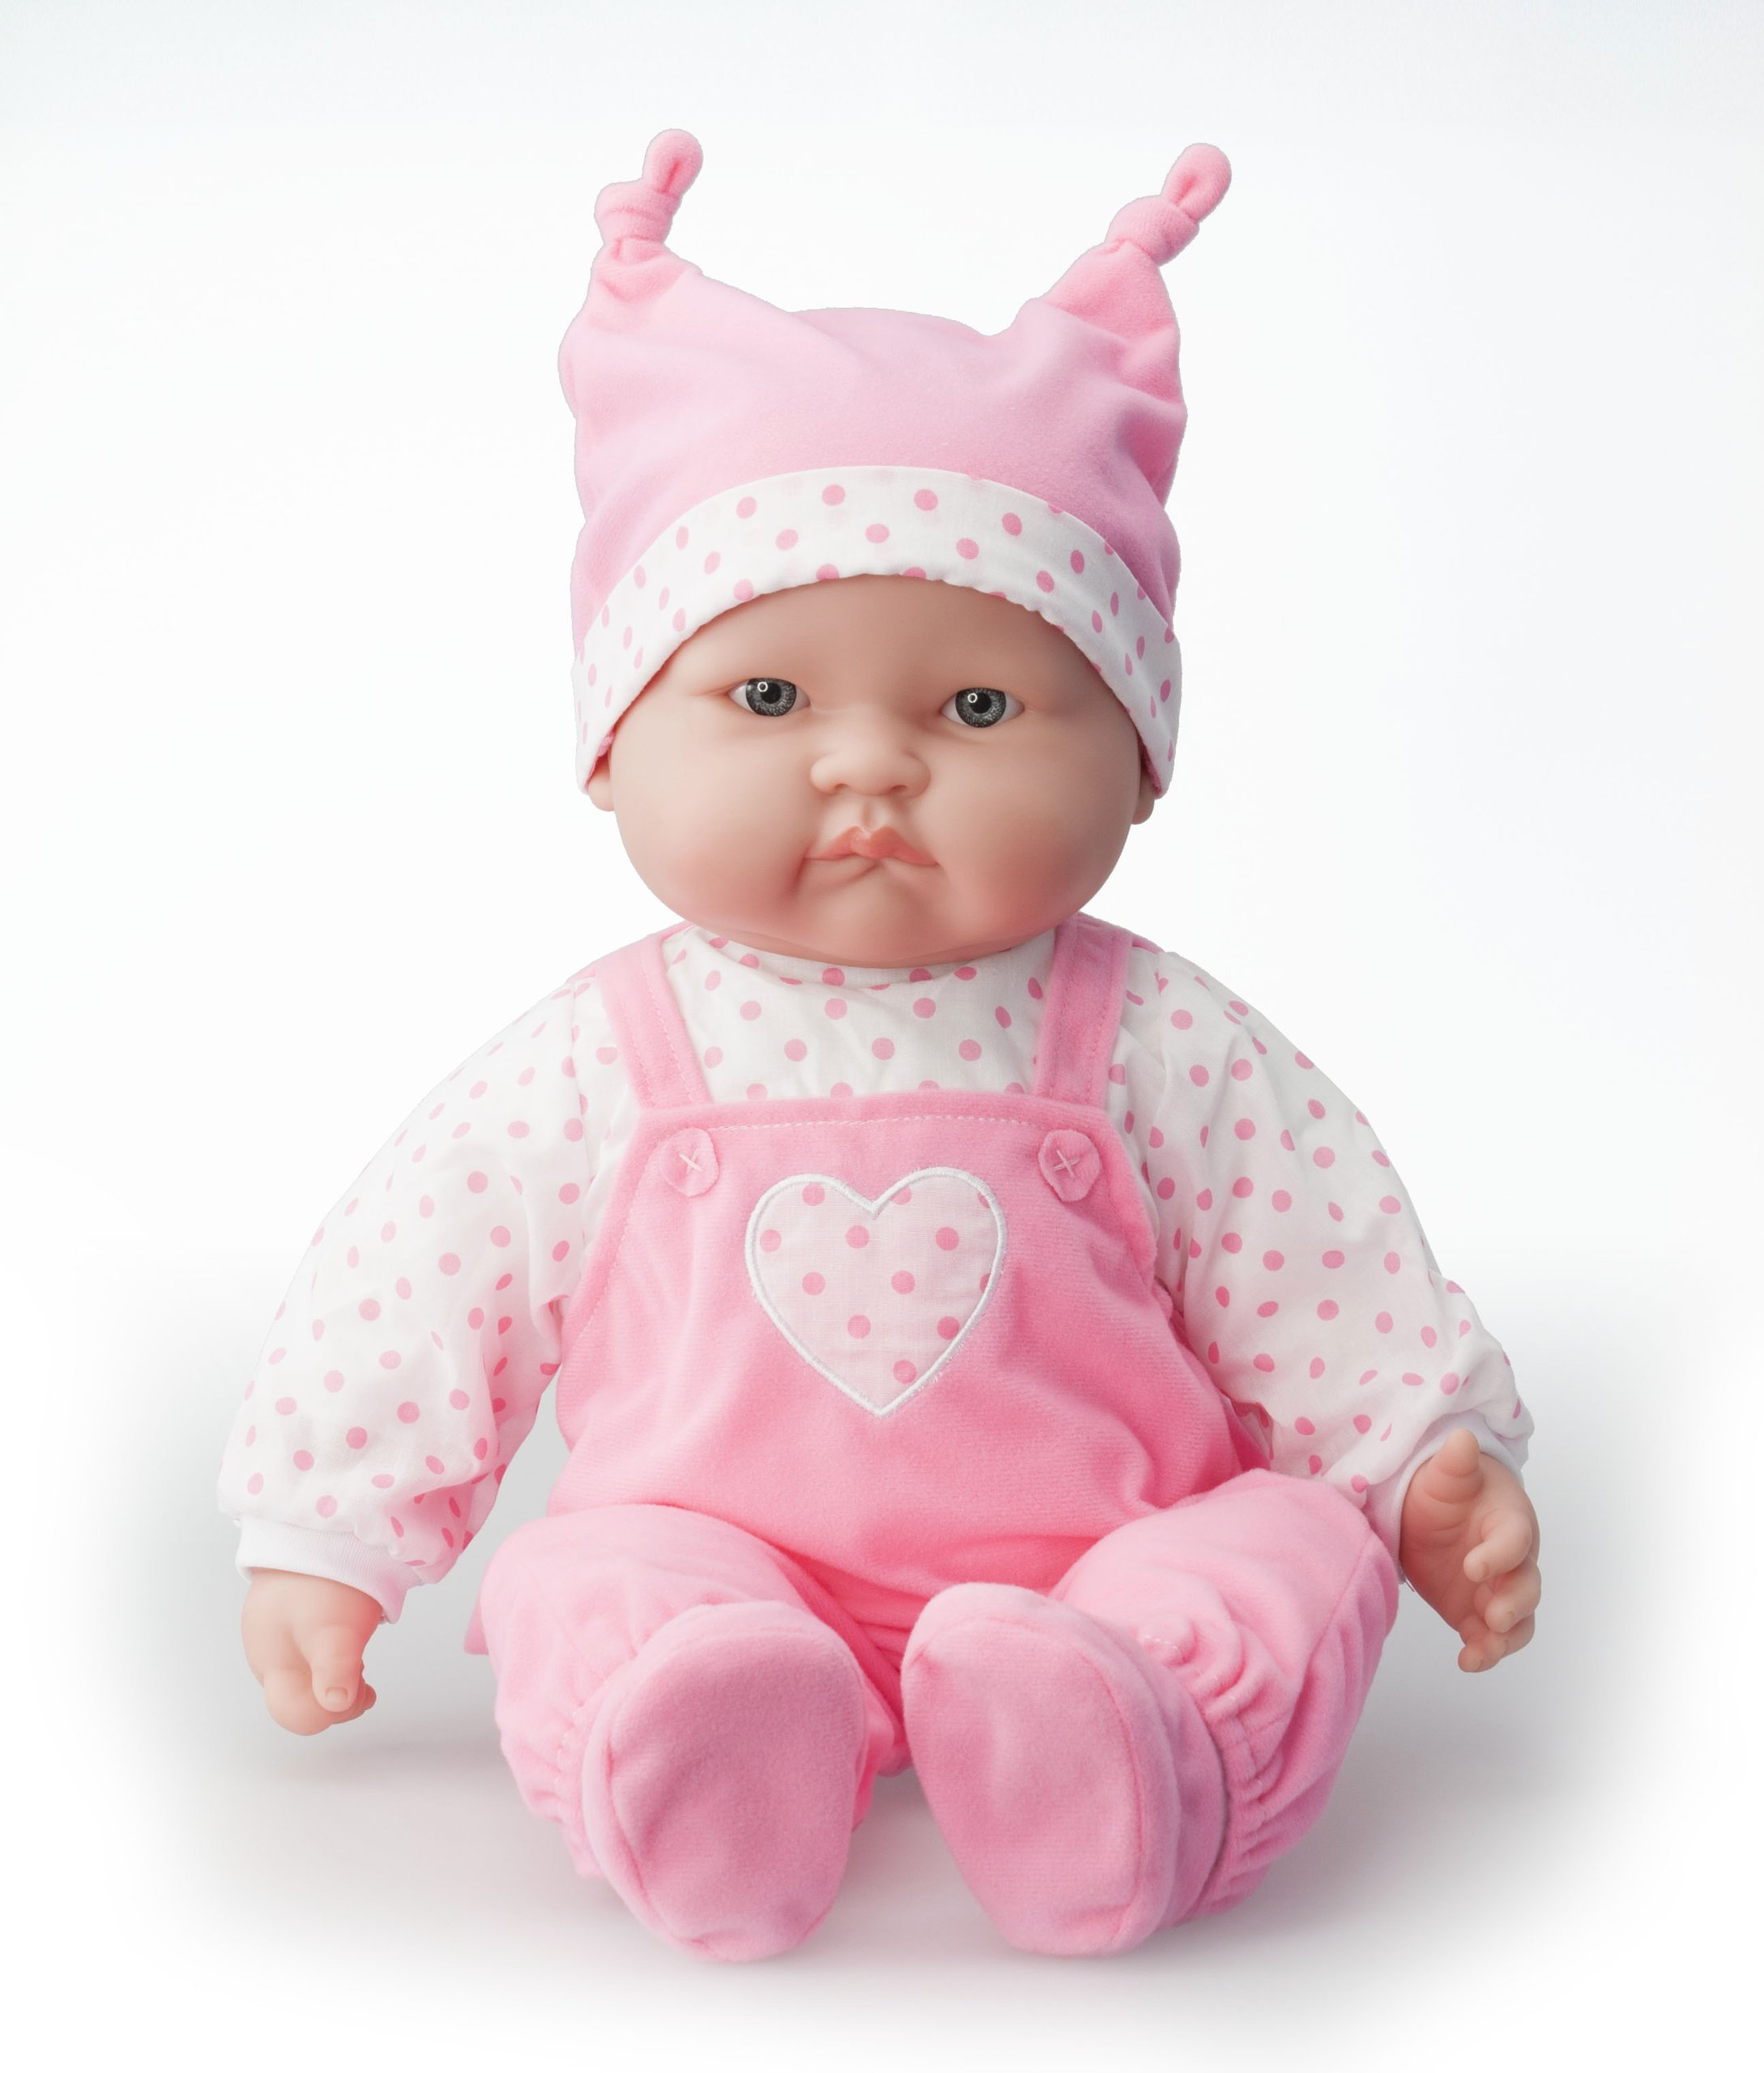 Jc Toys Lots To Cuddle Babies 20 Inch Pink Soft Body